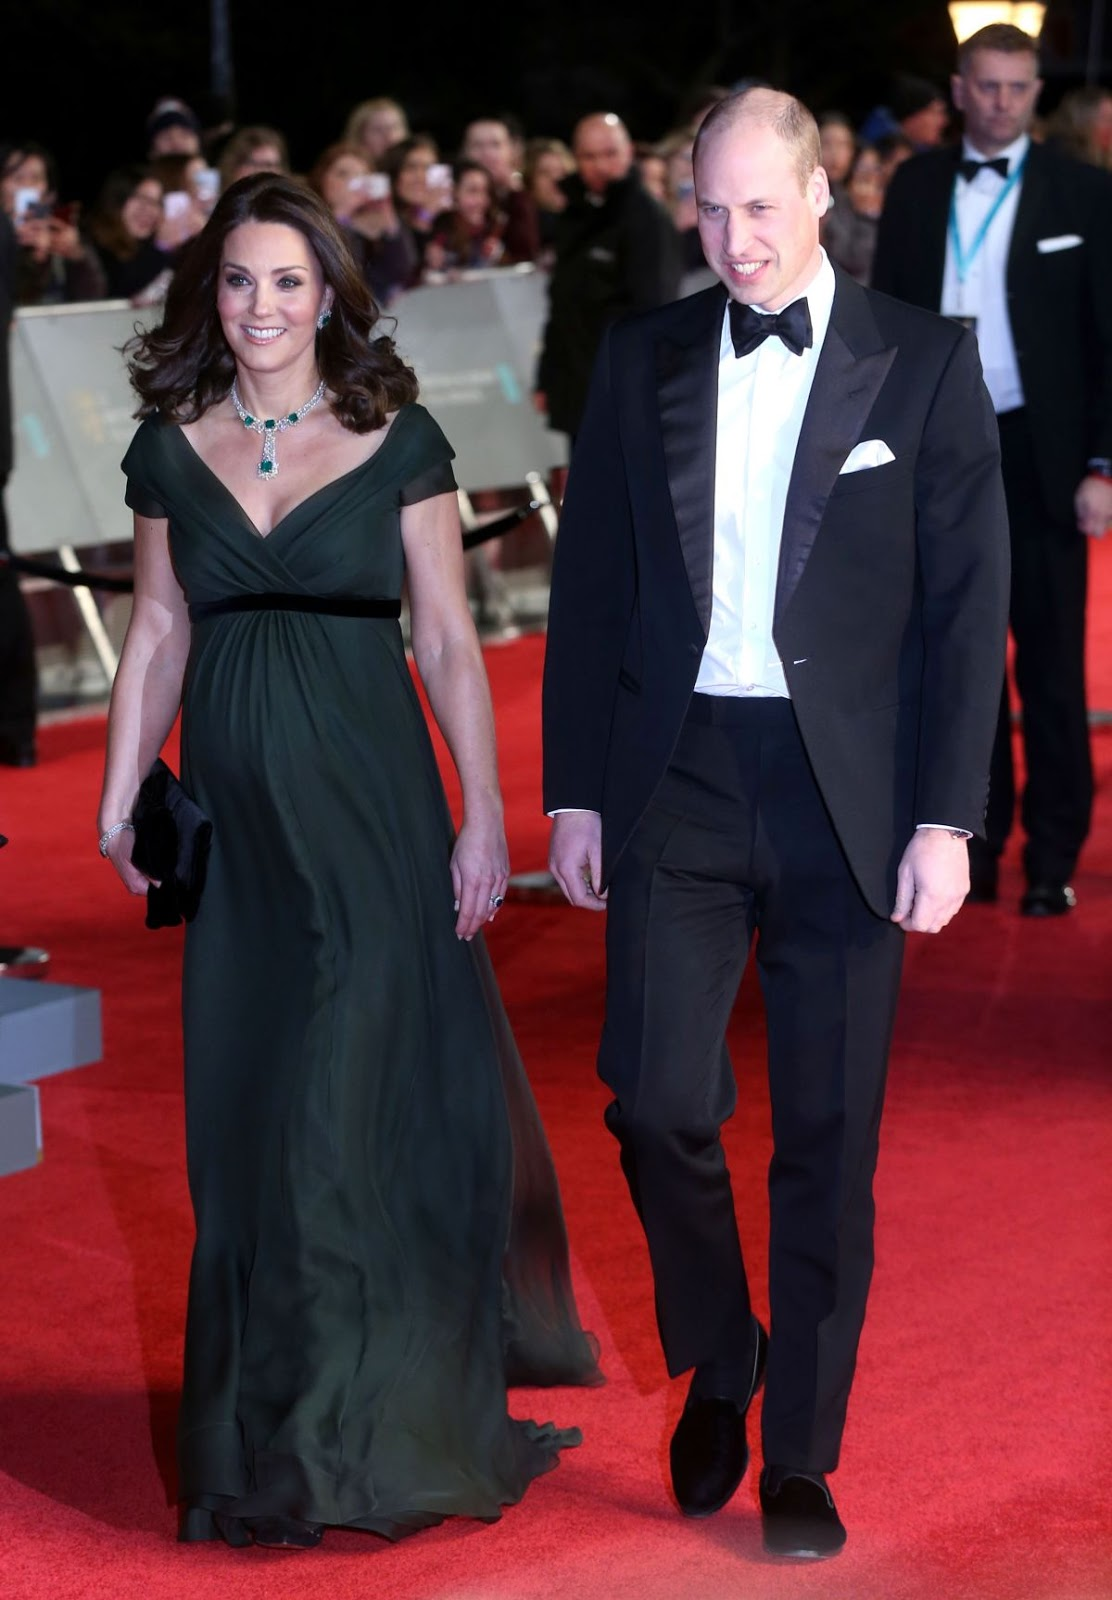 Pregnant KATE MIDDLETON at BAFTA Film Awards 2018 in London